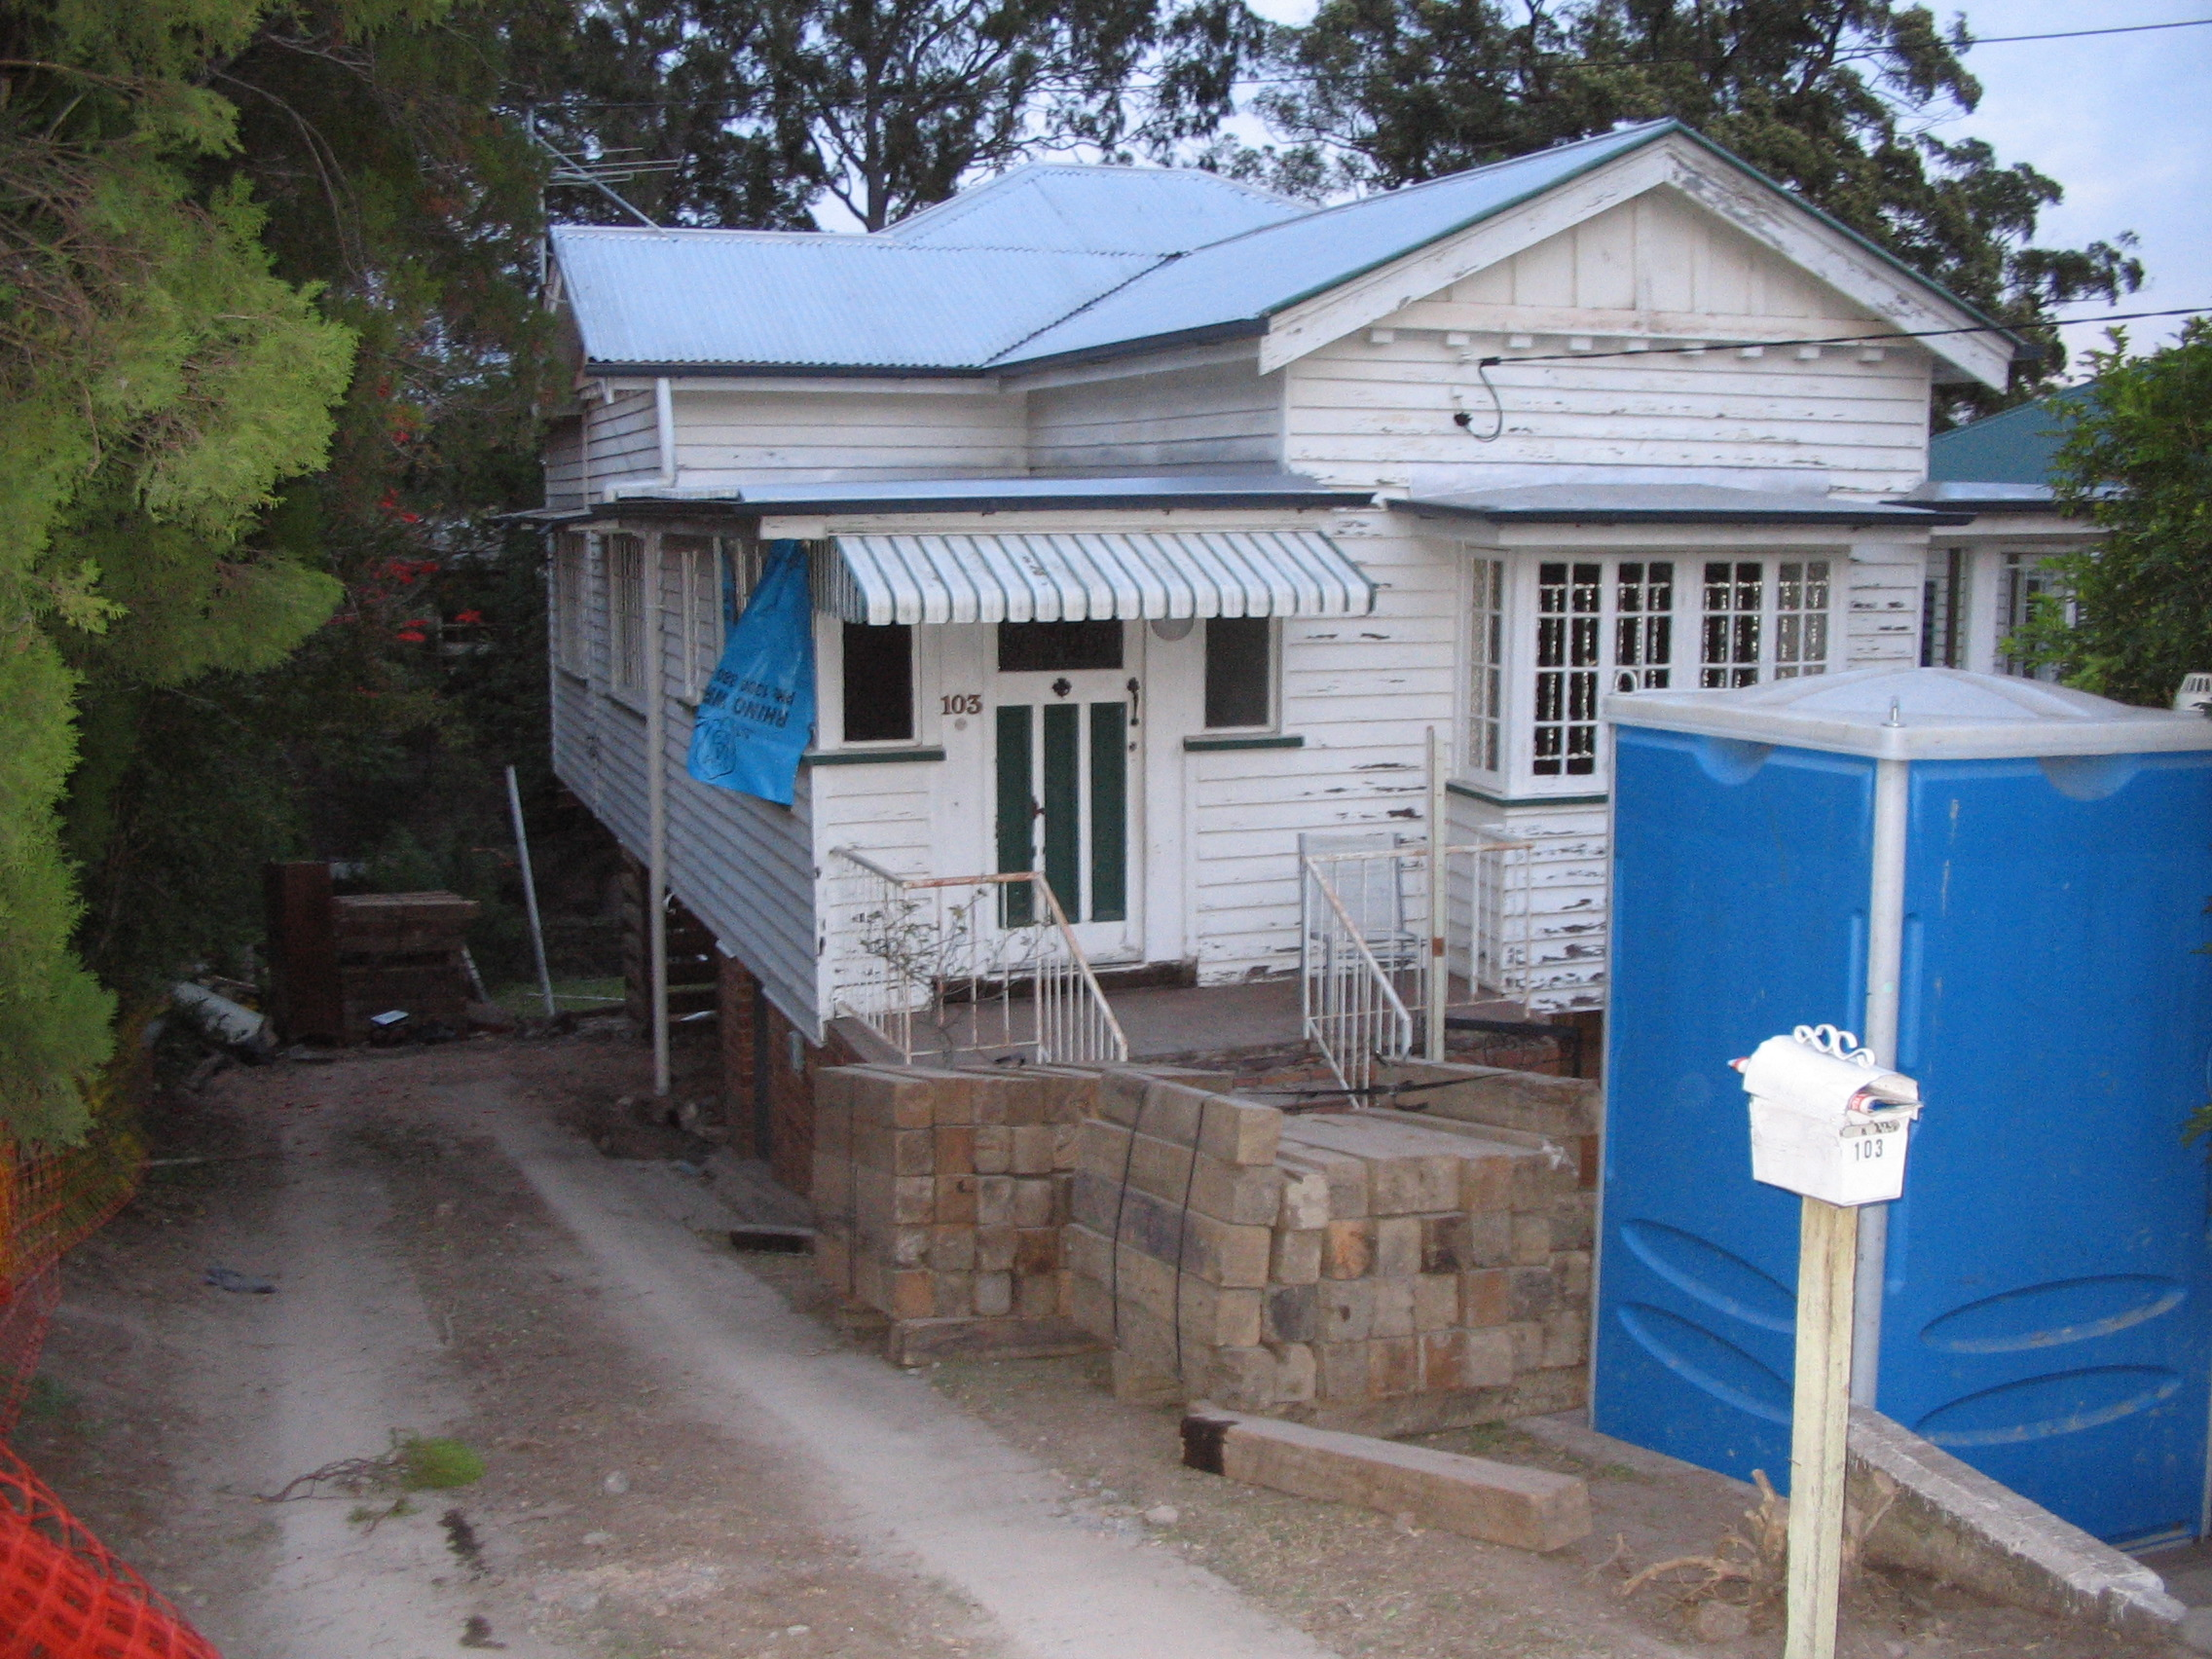 Old And Rundown Queenslander With Peeling White Paint And Untidy Exterior And Garden